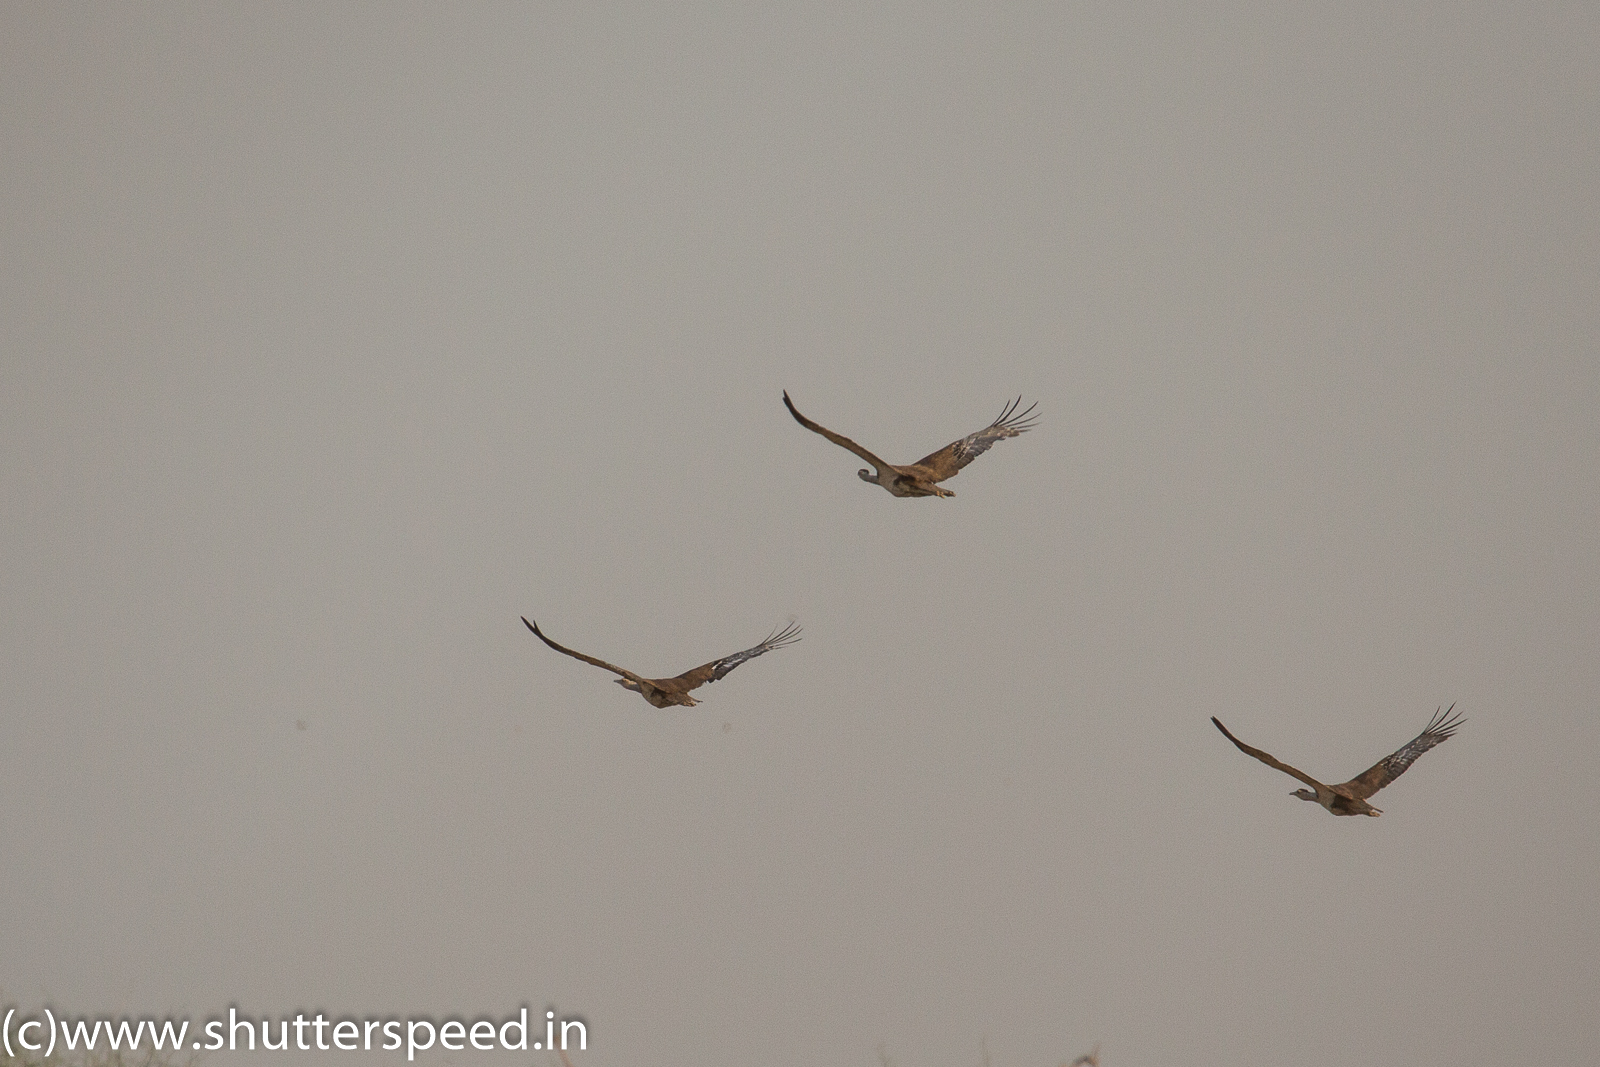 Record of Great Indian Bustard